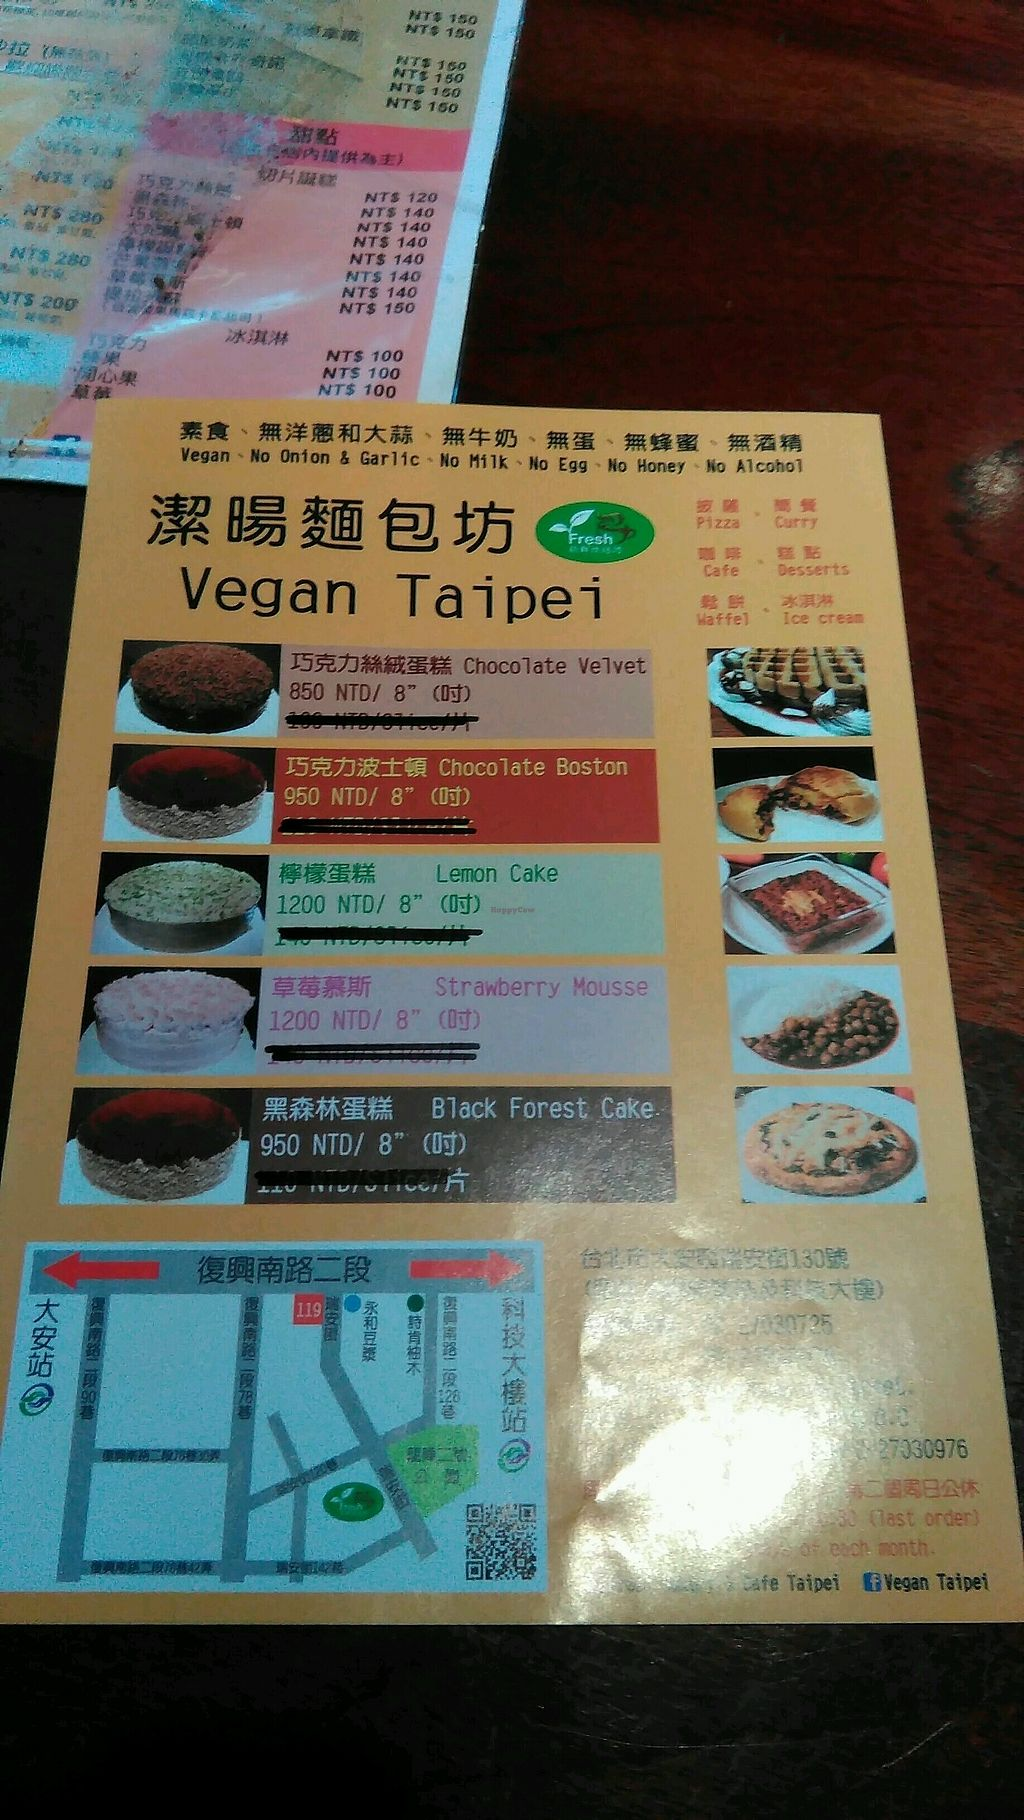 """Photo of Fresh Bakery & Cafe - Vegan Taipei  by <a href=""""/members/profile/CarinaJ.Rother"""">CarinaJ.Rother</a> <br/>vegan cakes for your party  <br/> January 16, 2018  - <a href='/contact/abuse/image/37227/347142'>Report</a>"""